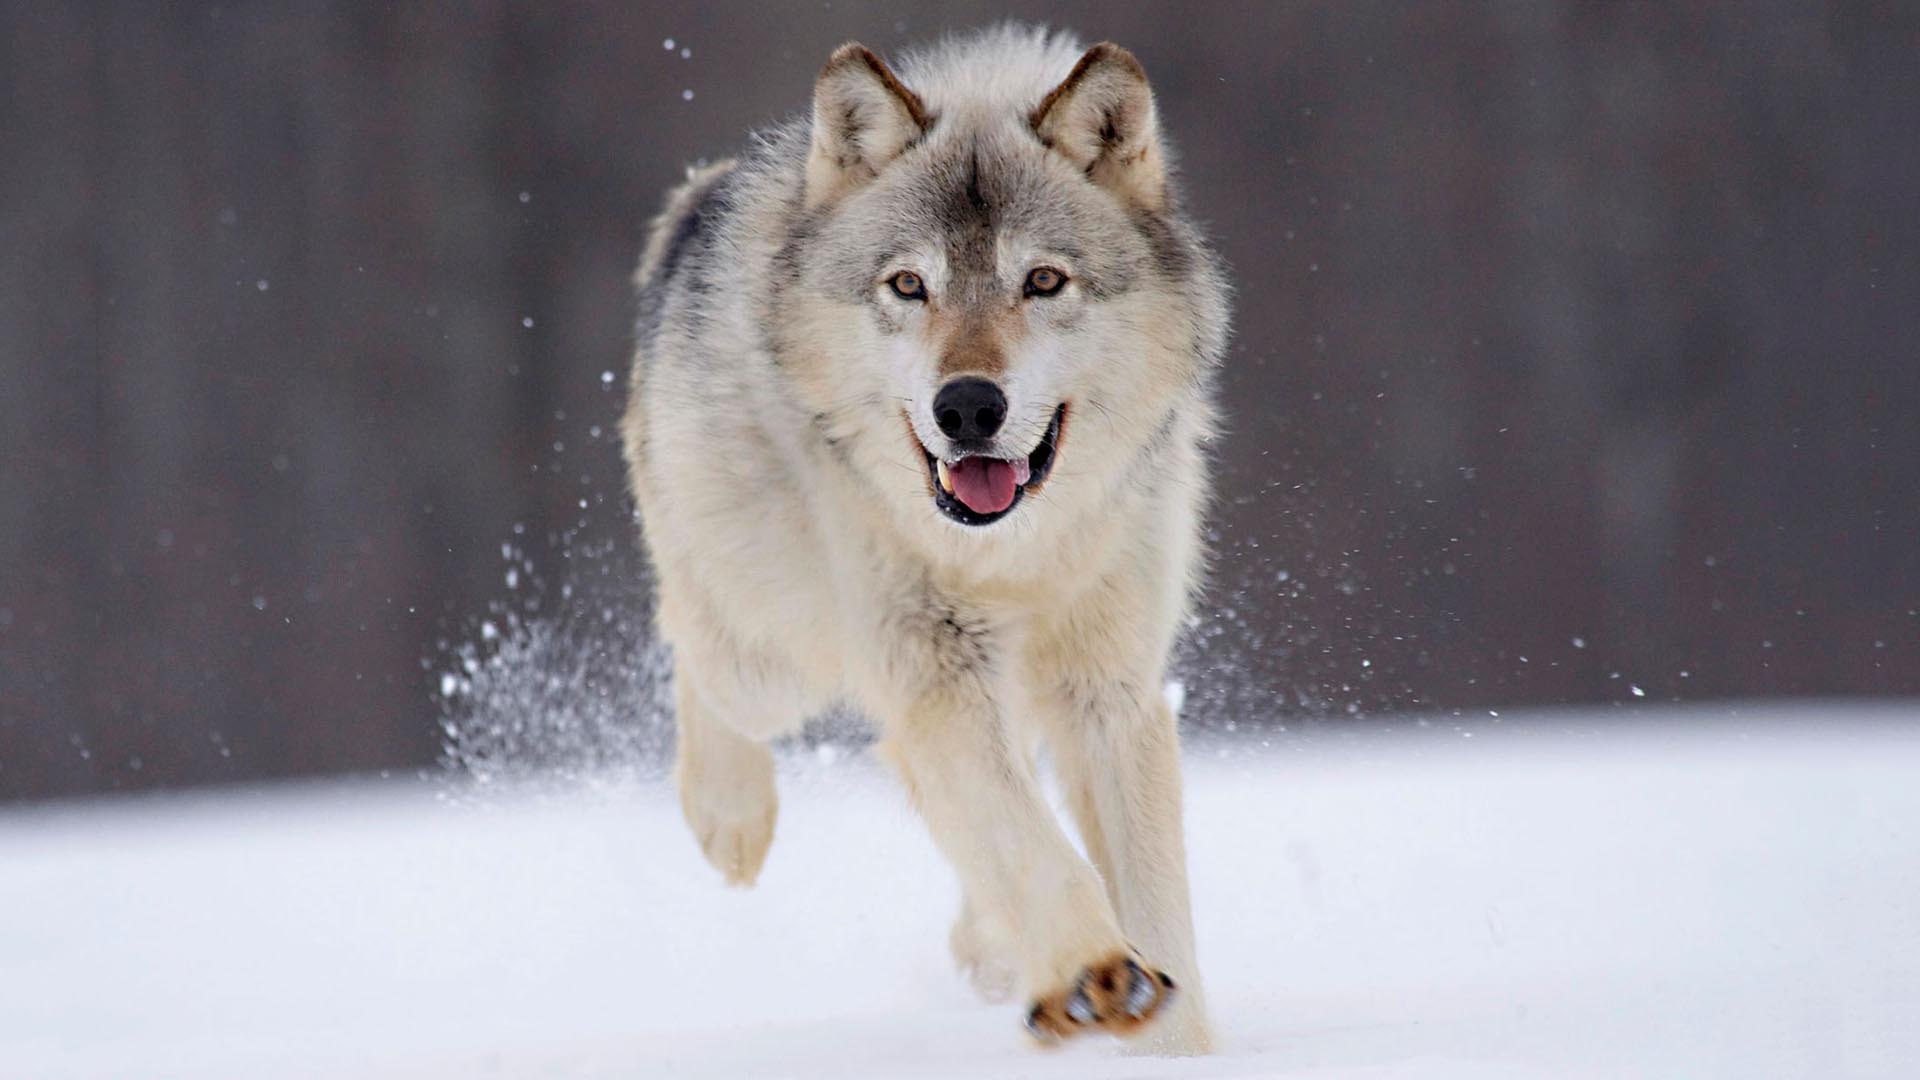 Snow Wolf HD Wallpaper FullHDWpp   Full HD Wallpapers 1920x1080 1920x1080